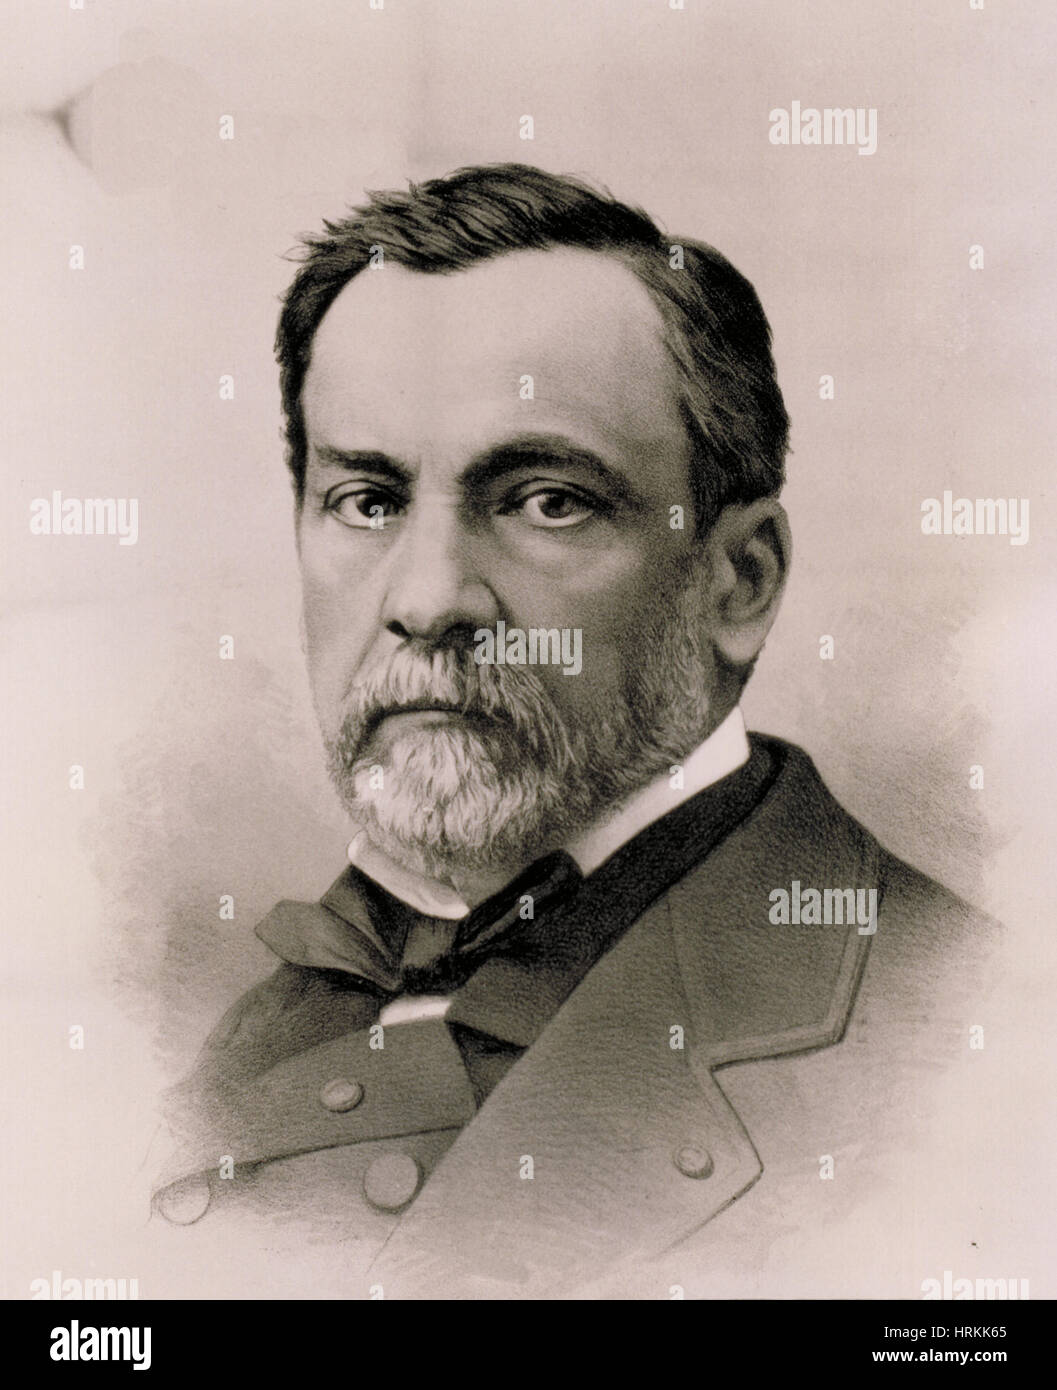 Louis Pasteur, French Chemist and Bacteriologist - Stock Image